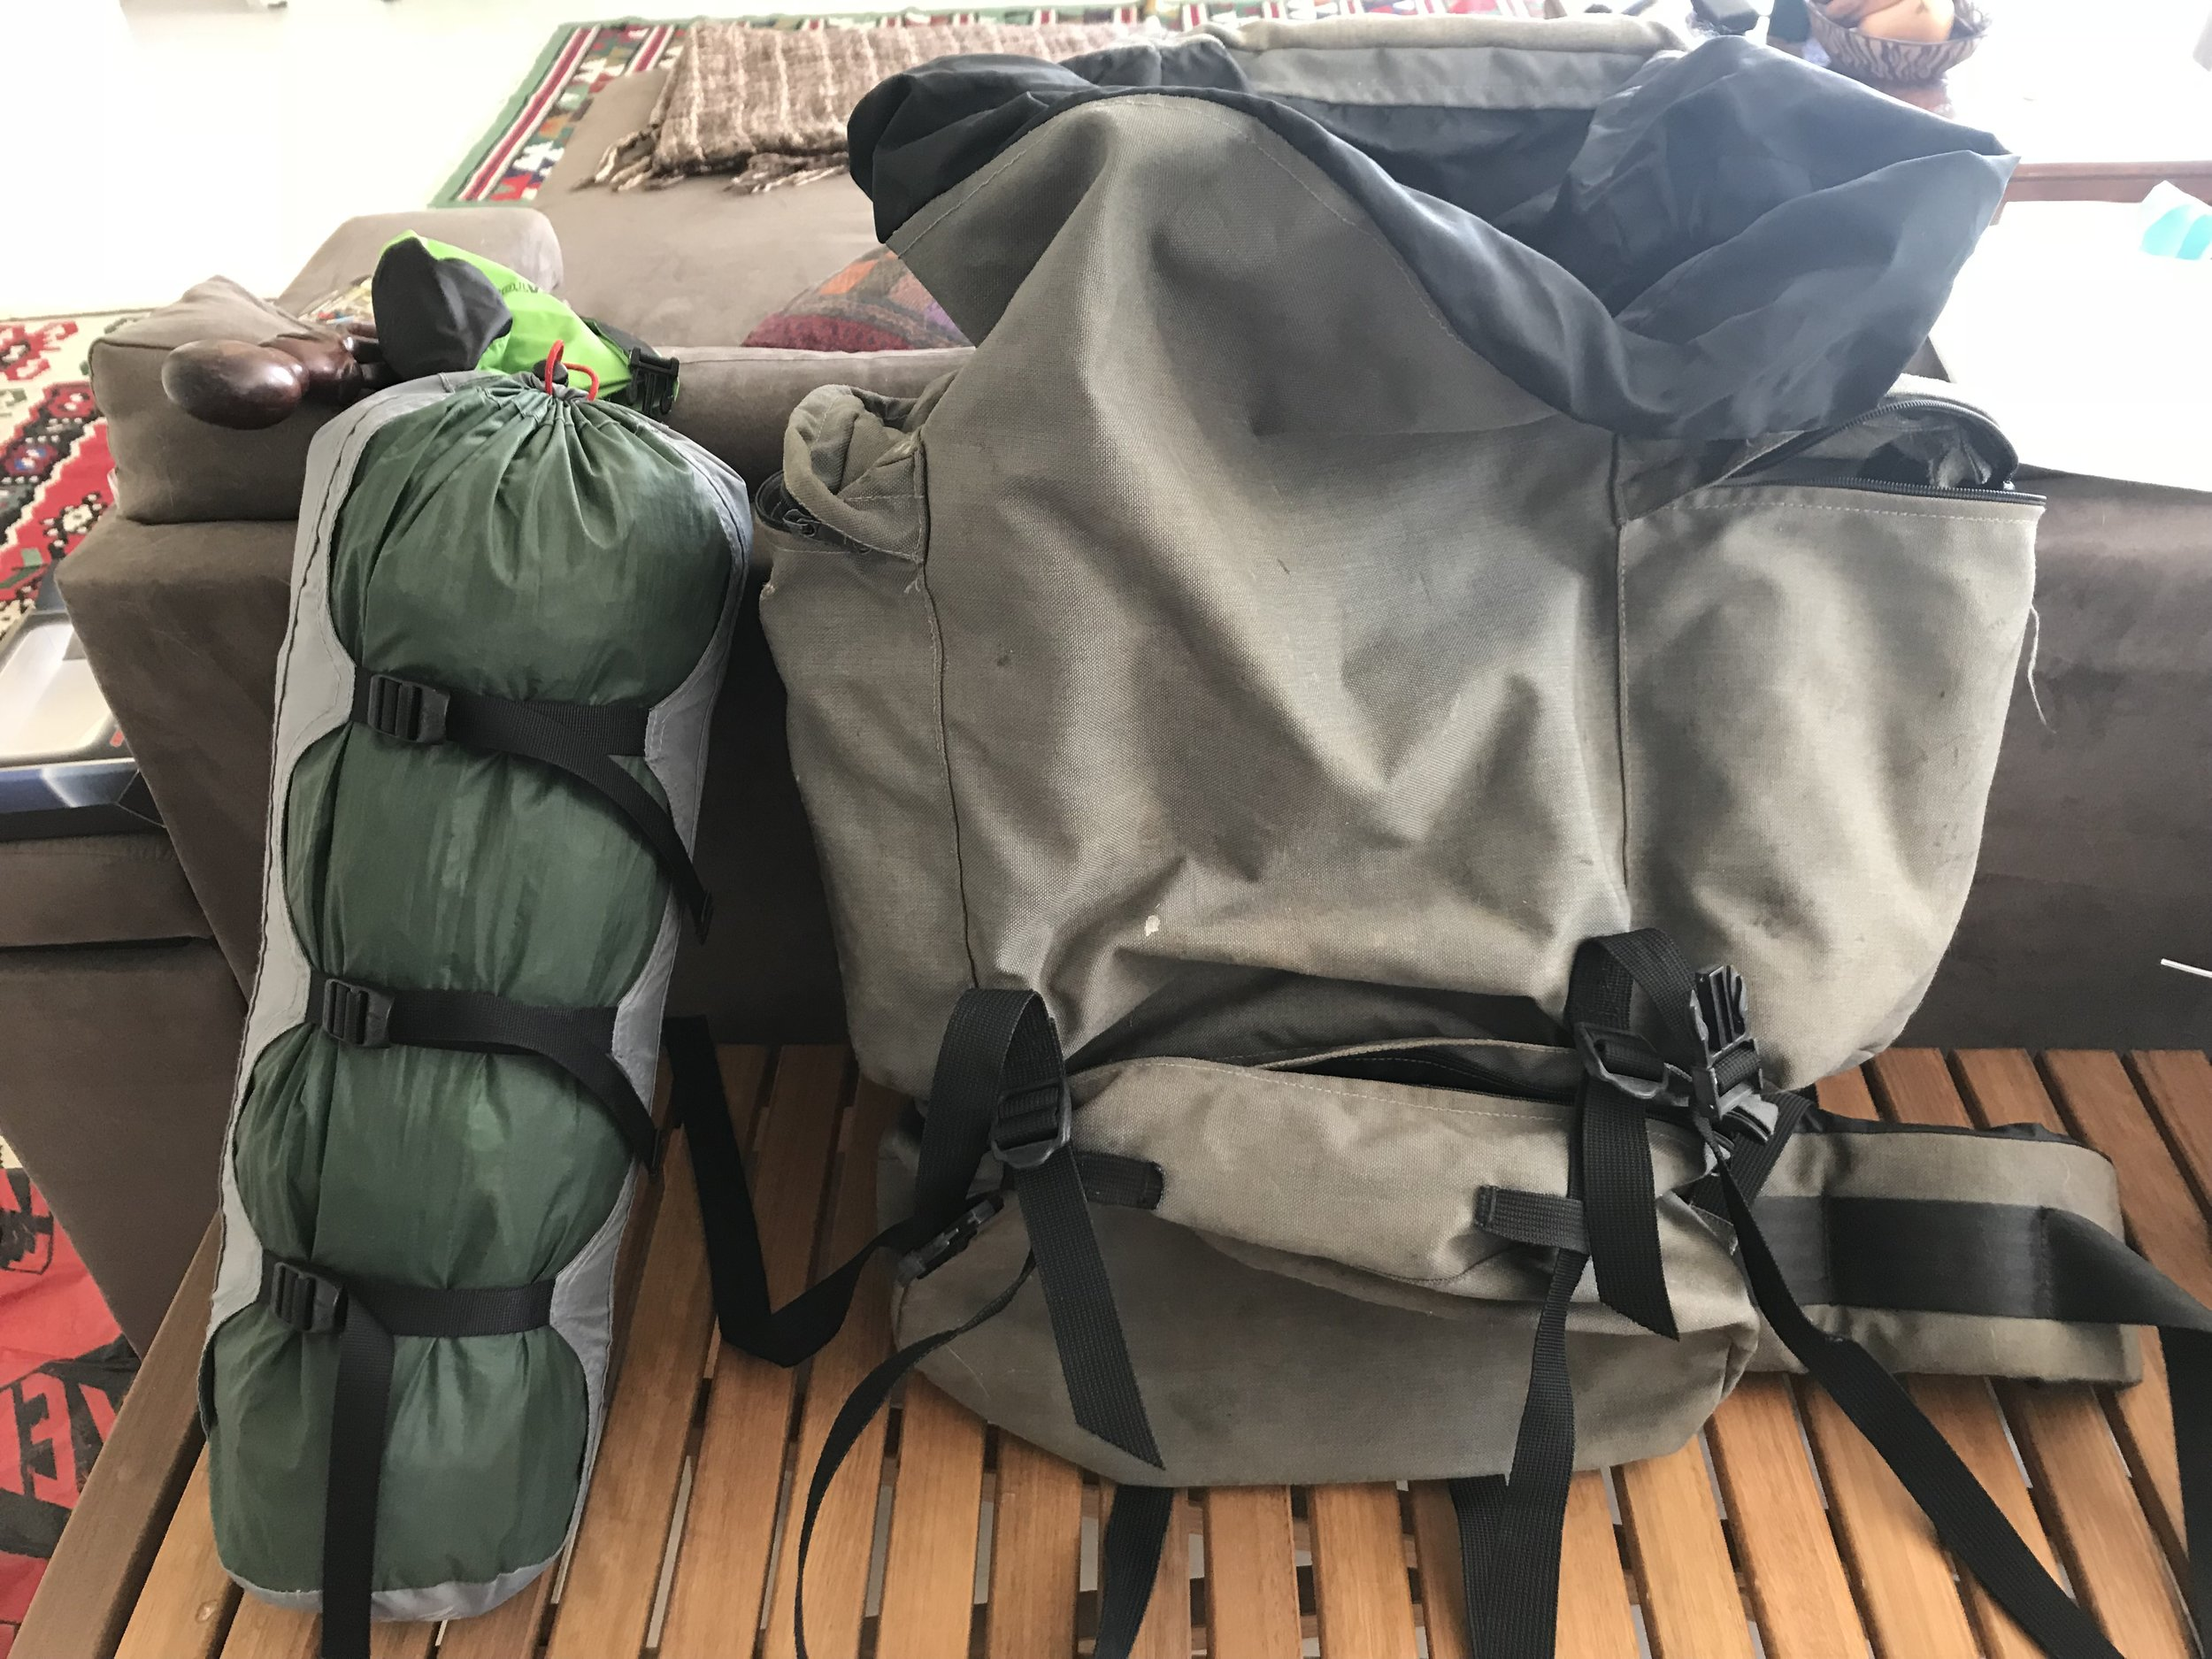 Travel packing camping gear